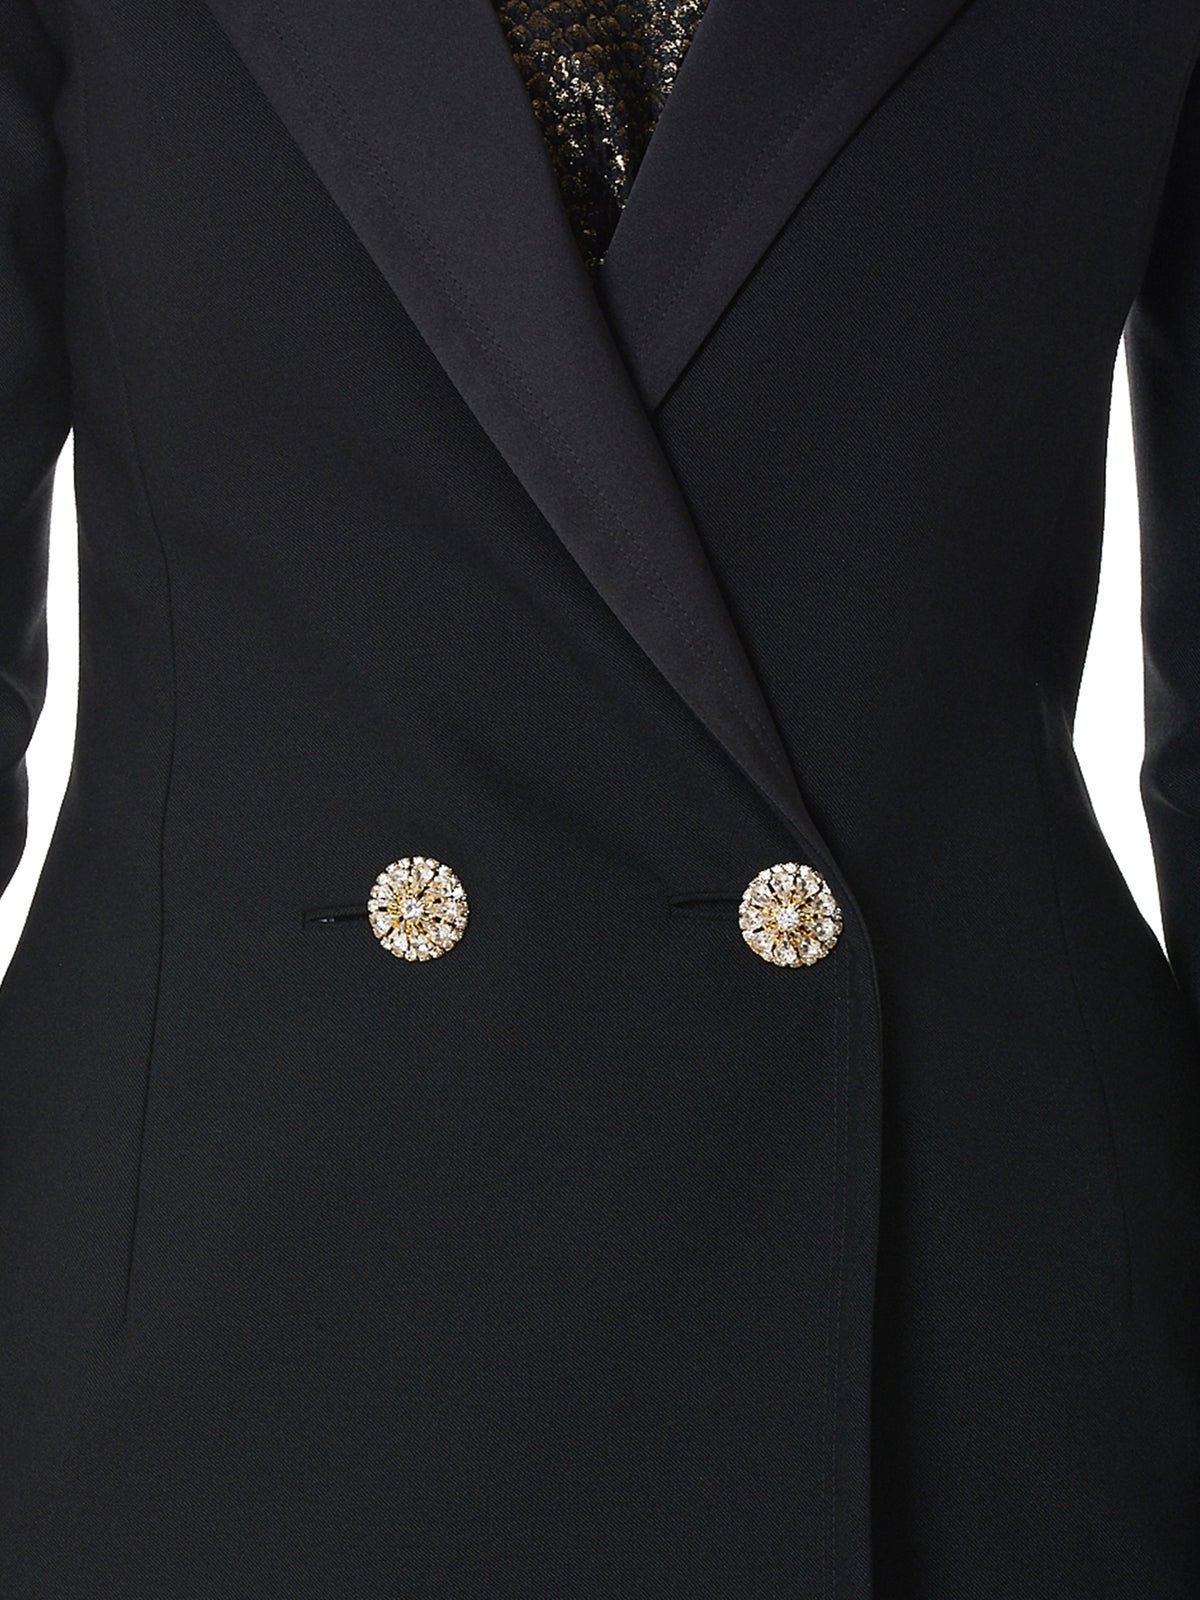 Faith Connexion Blazer - Hlorenzo Detail 2